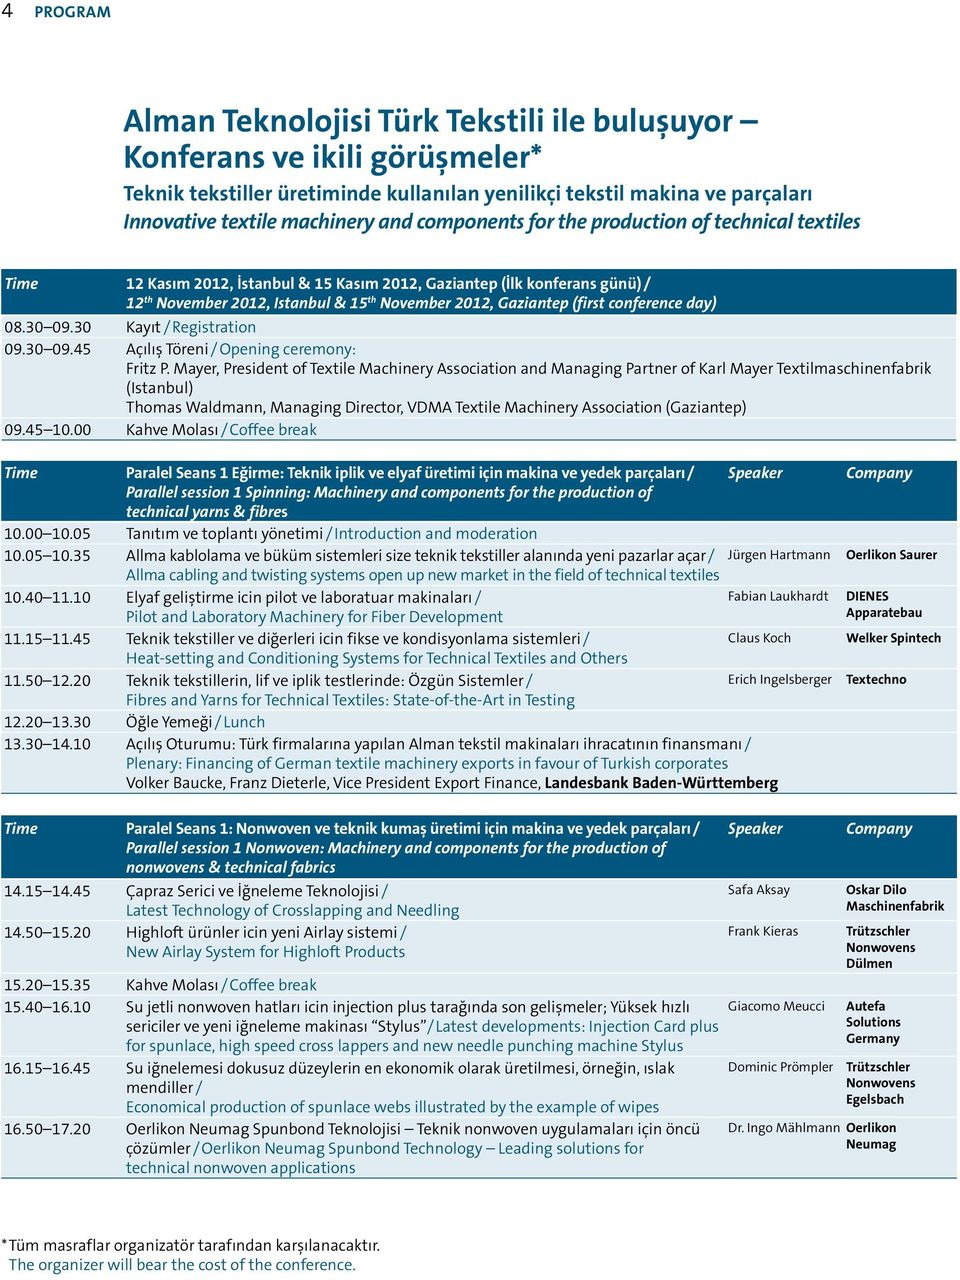 (first conference day) 08.30 09.30 Kayıt / Registration 09.30 09.45 Açılış Töreni / Opening ceremony: Fritz P.